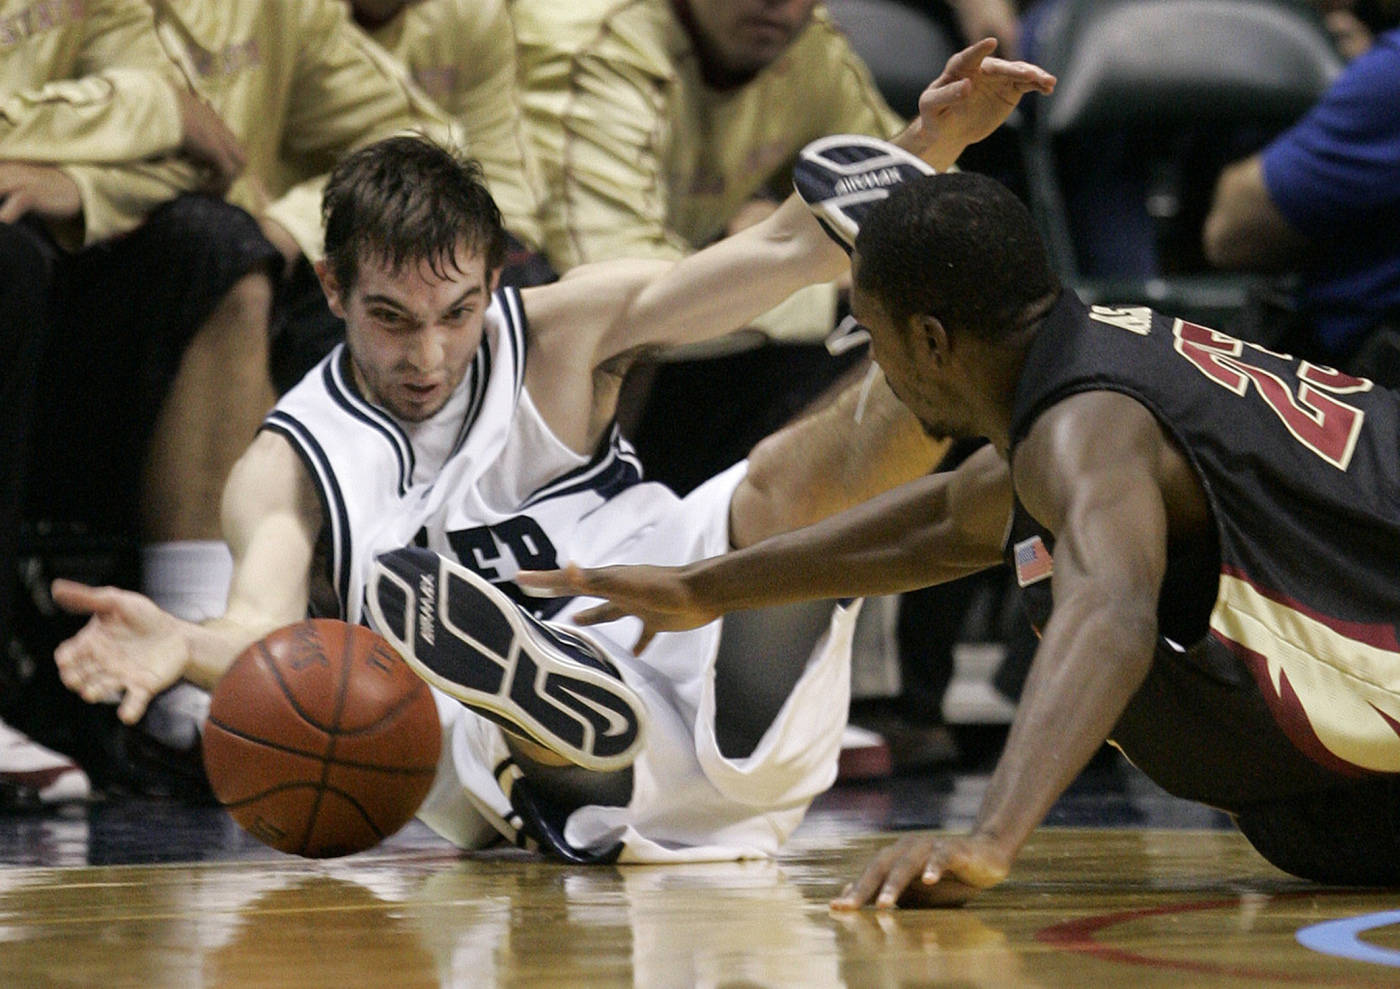 Butler's A.J. Graves and Toney Douglas scramble on the floor for a loose ball in the second half. (AP Photo/Michael Conroy)